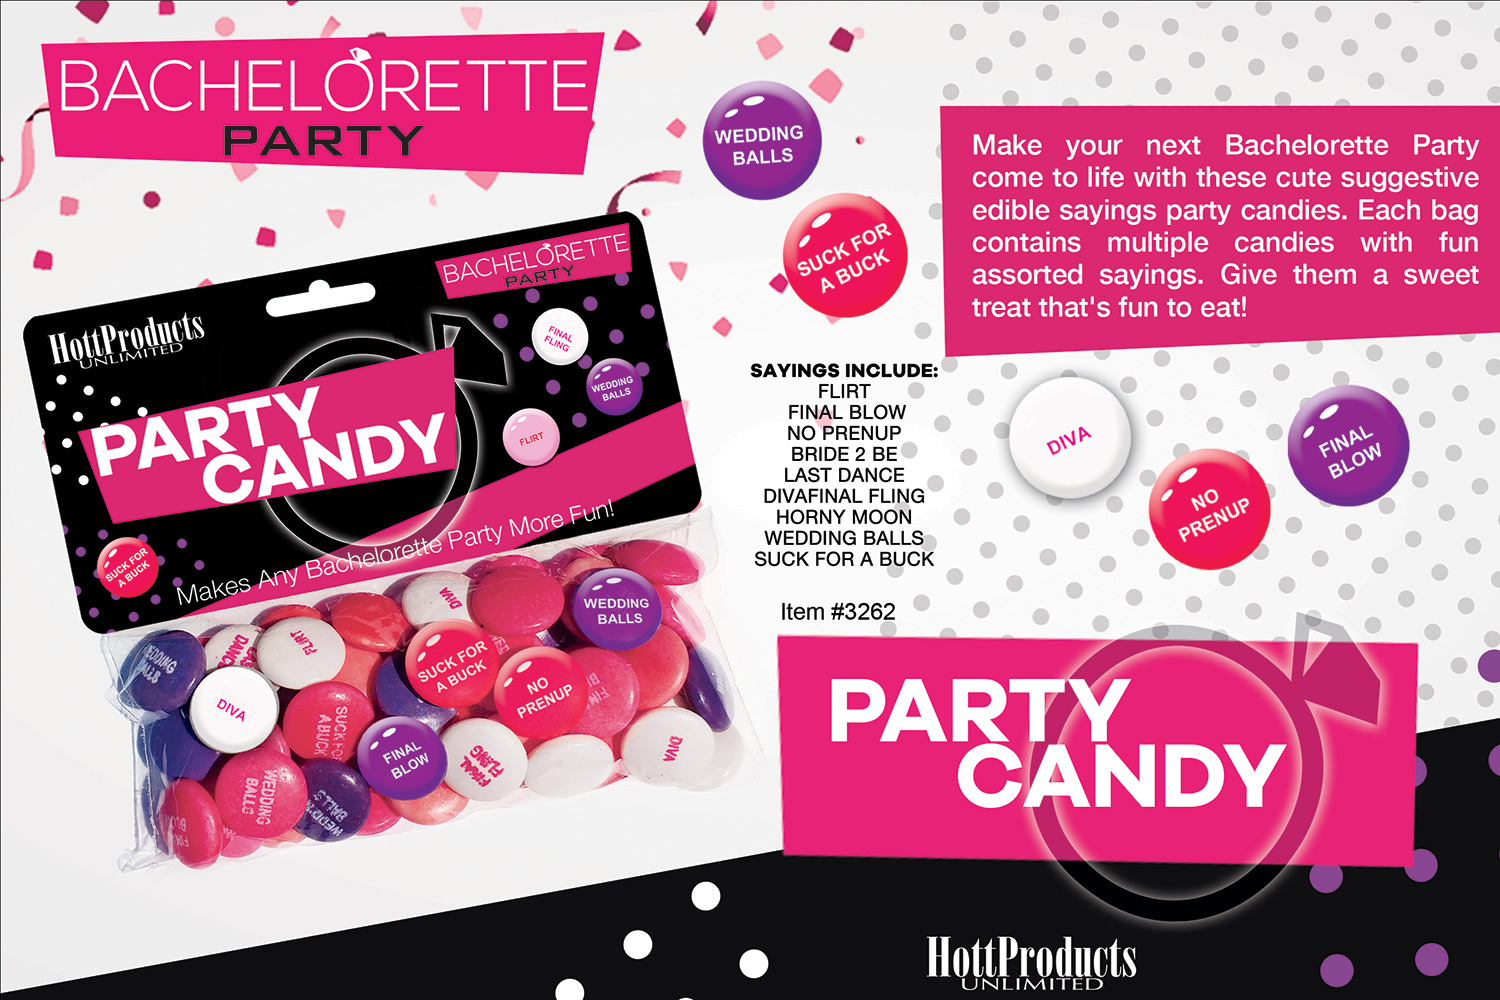 BACHELORETTE PARTY CANDY ASSTD SAYINGS IN BAG W HEADER - HO3262